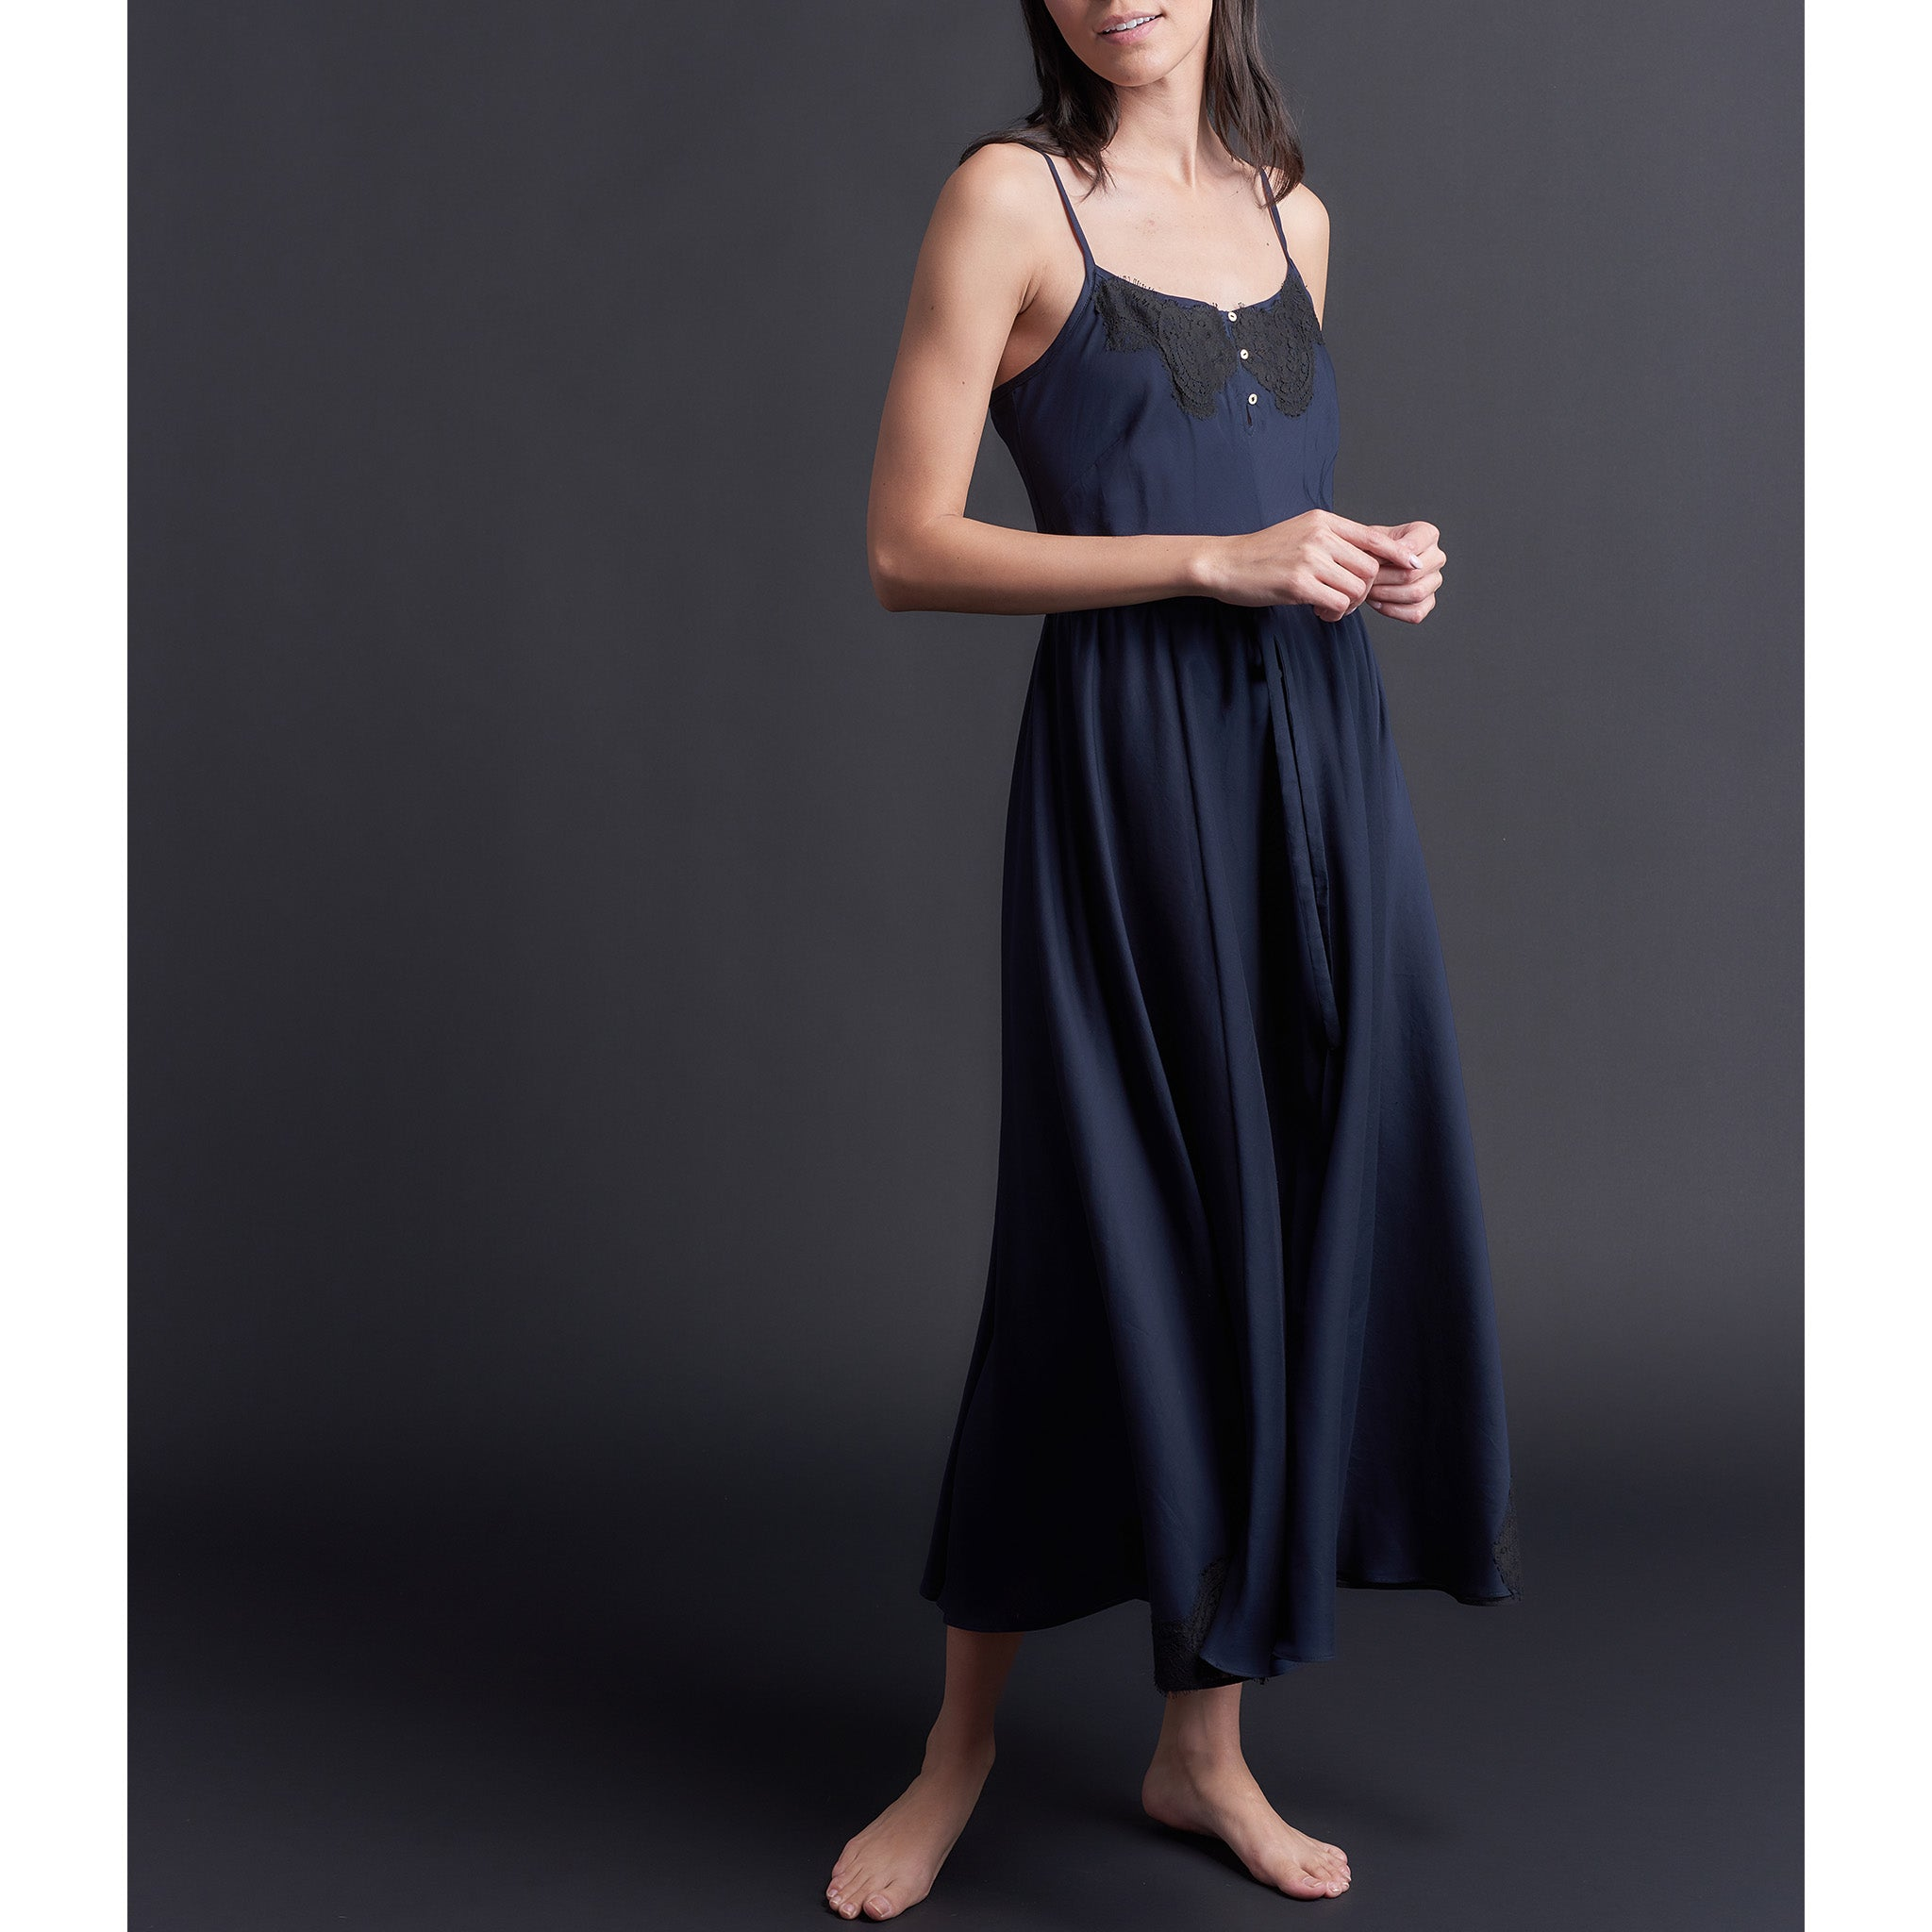 Lilia Slip Dress in Double Layer Silk Cotton Voile w/ French Lace